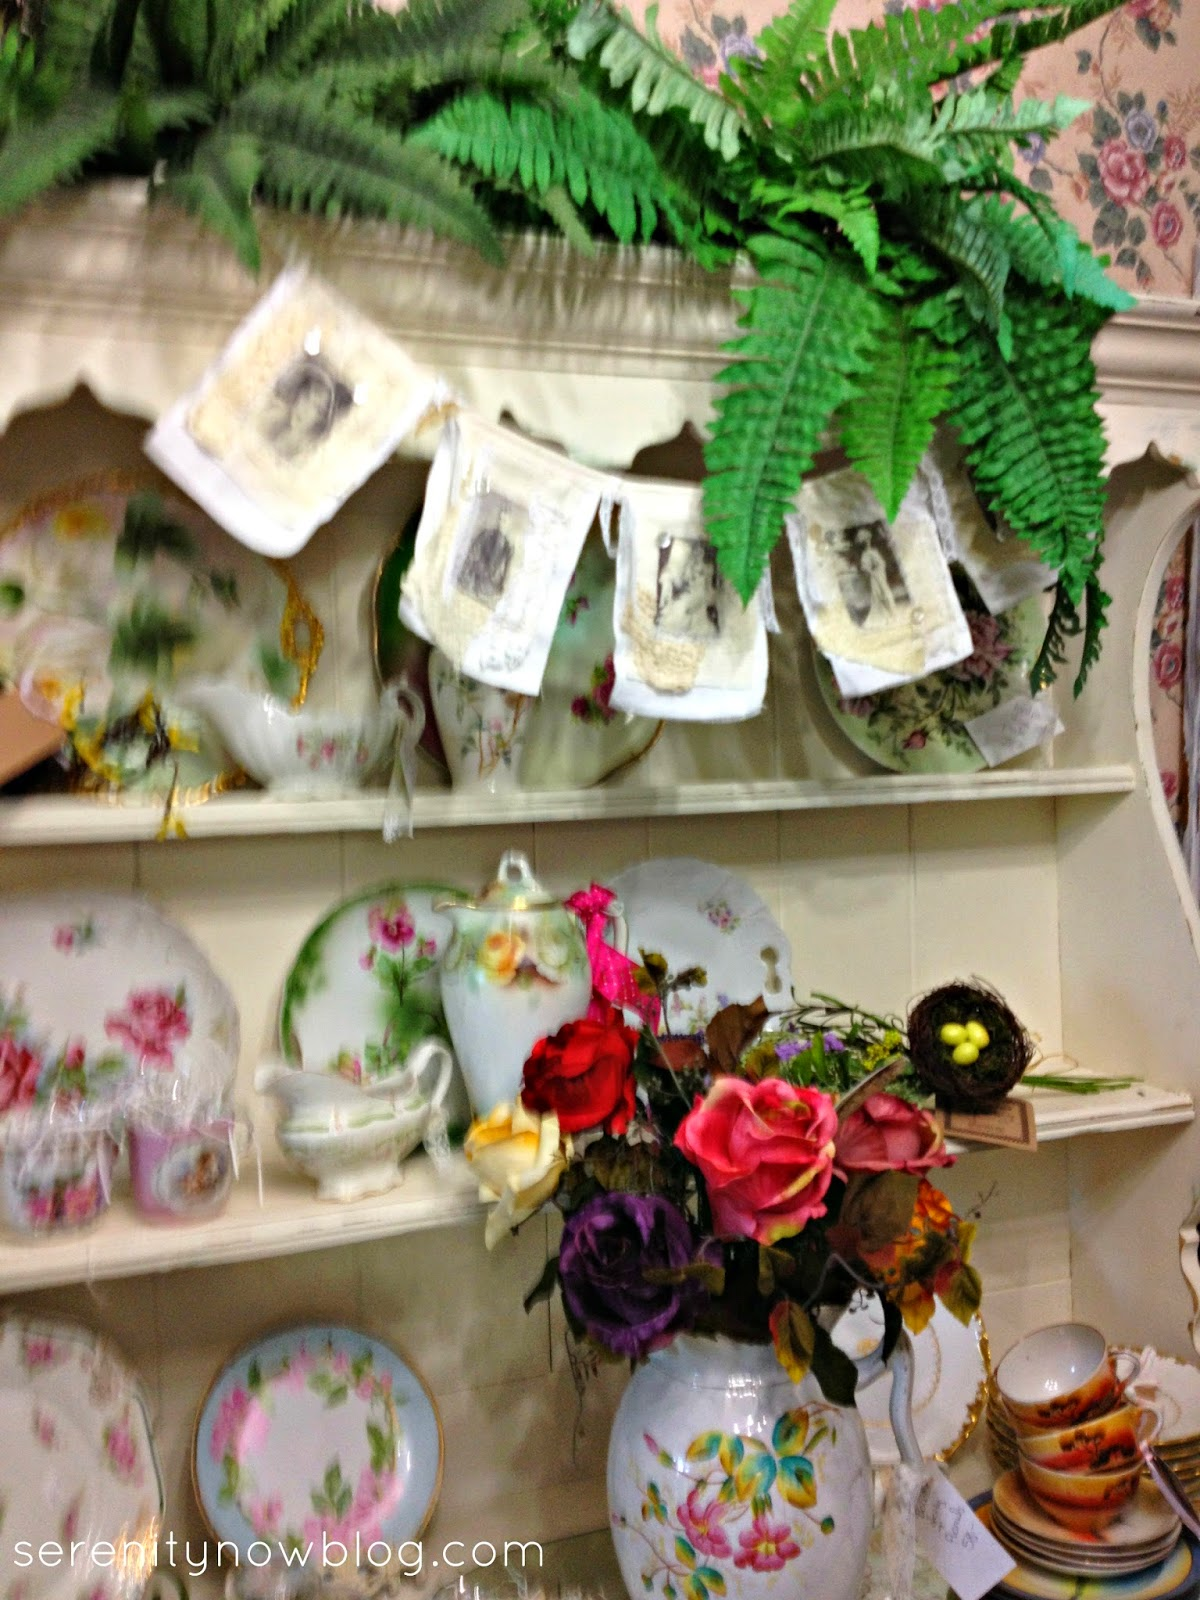 Snow Creek Farm {Farmhouse Boutique Show in Virginia}, from Serenity Now